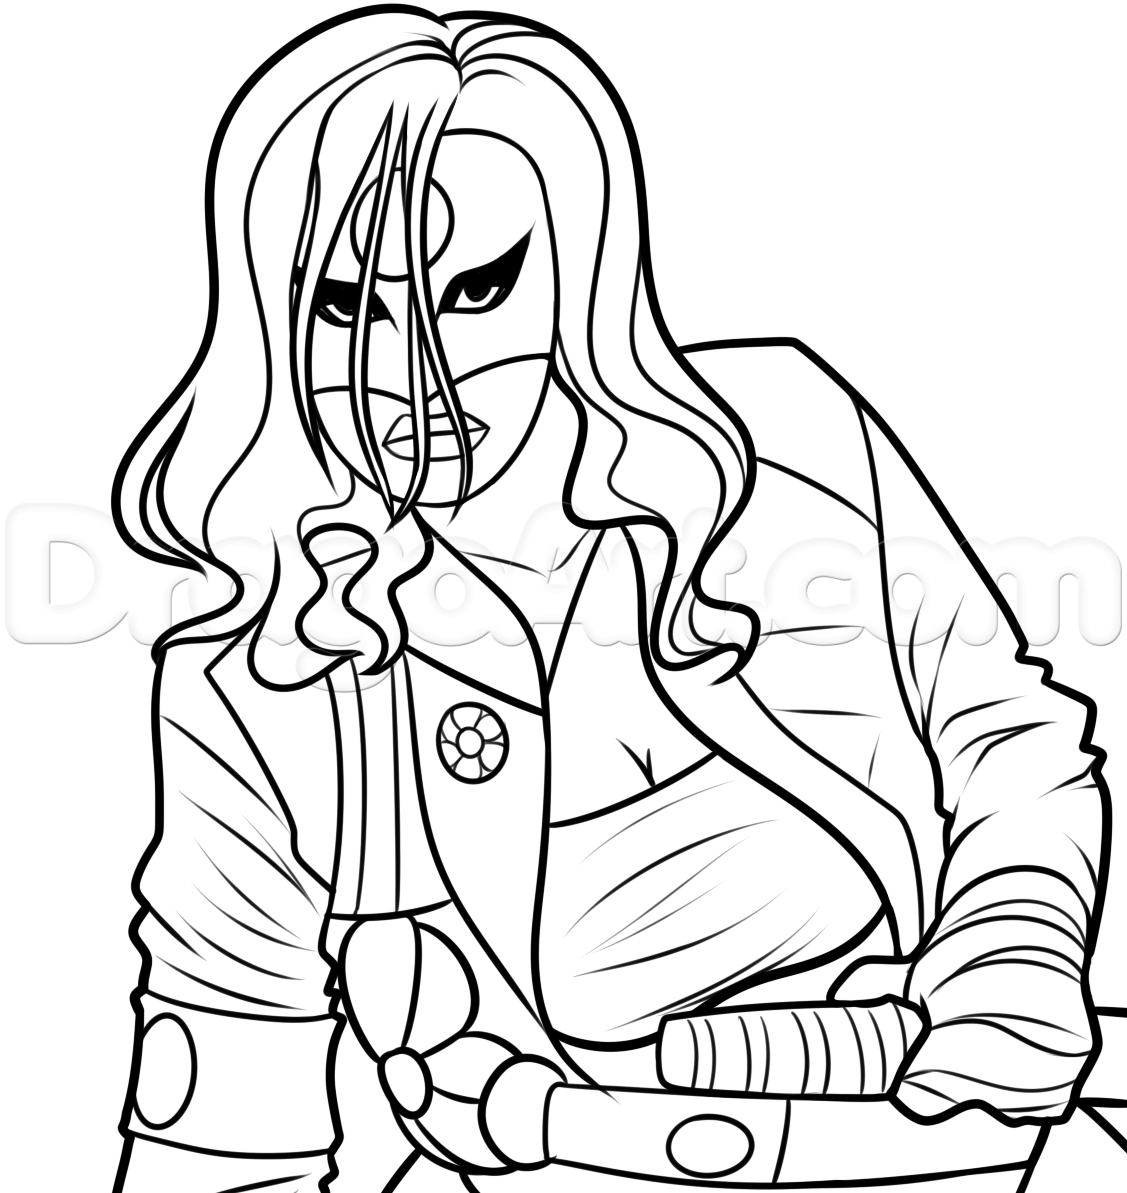 Harley quinn printable coloring pages - 304ee43685f5c406385e52ca2a69570a Png